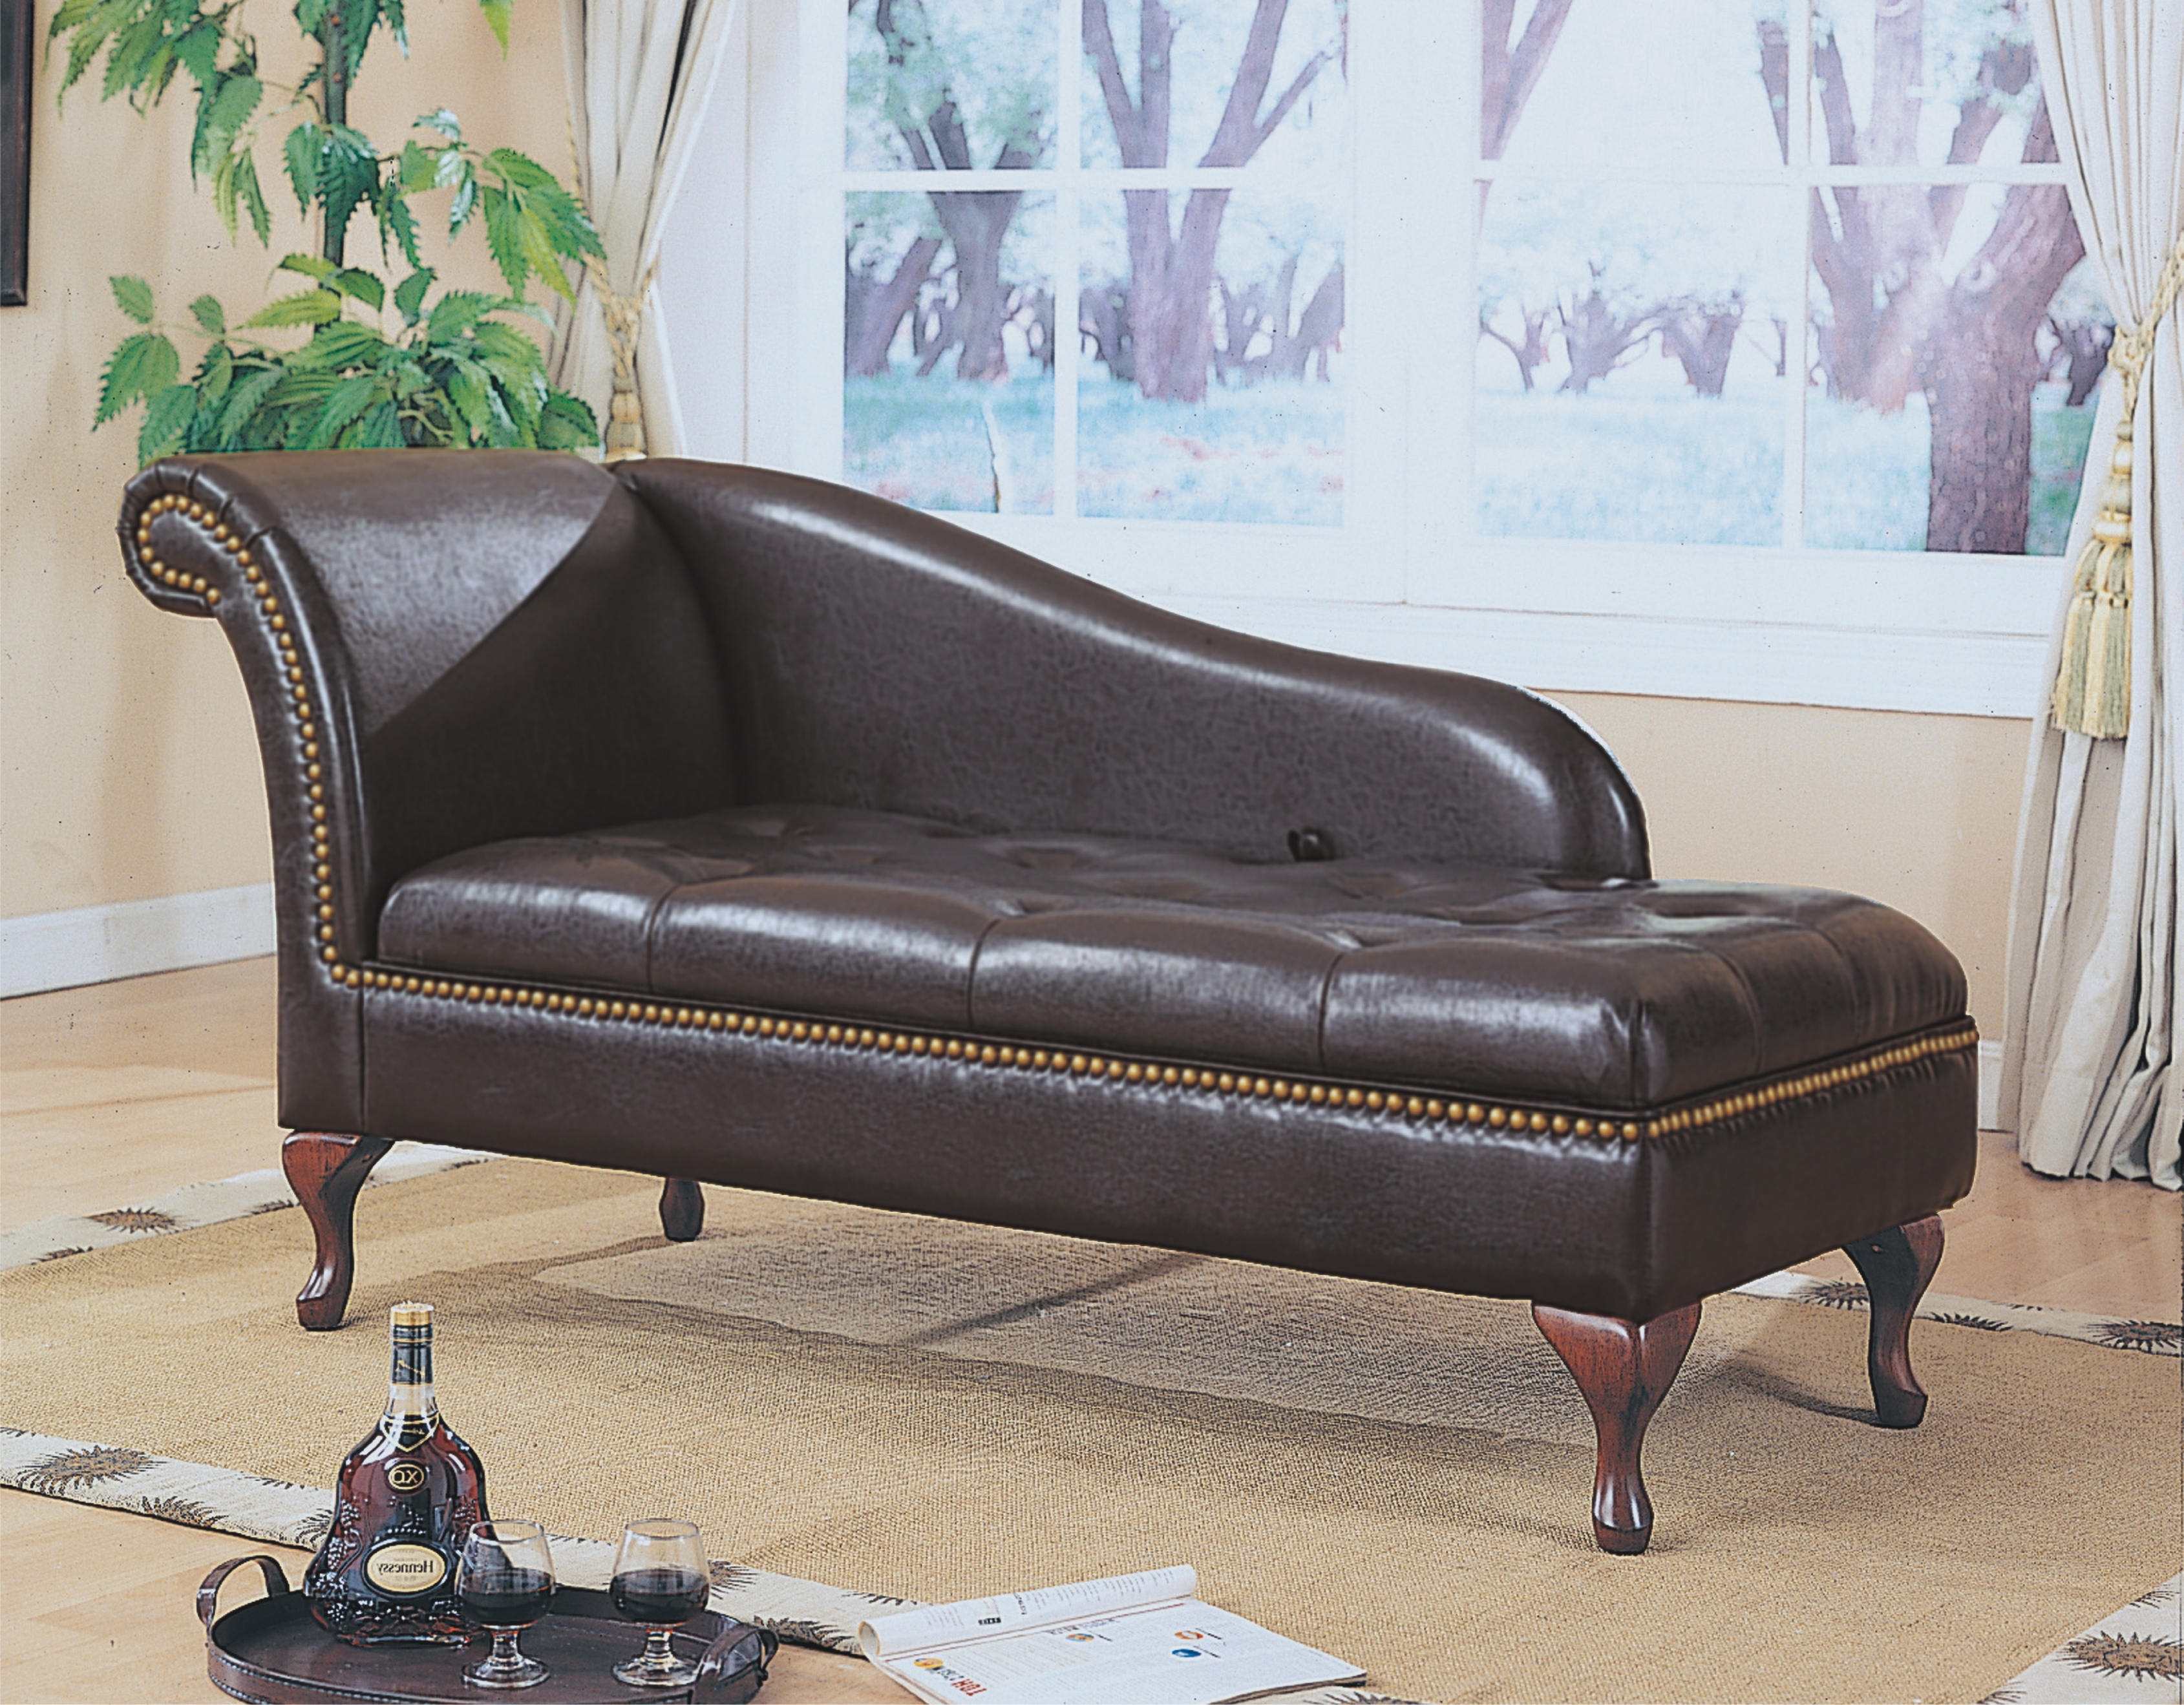 Preferred Dark Brown Leather Sofa Chaise Lounge With Curving Headboard And In Brown Leather Chaise Lounges (View 9 of 15)